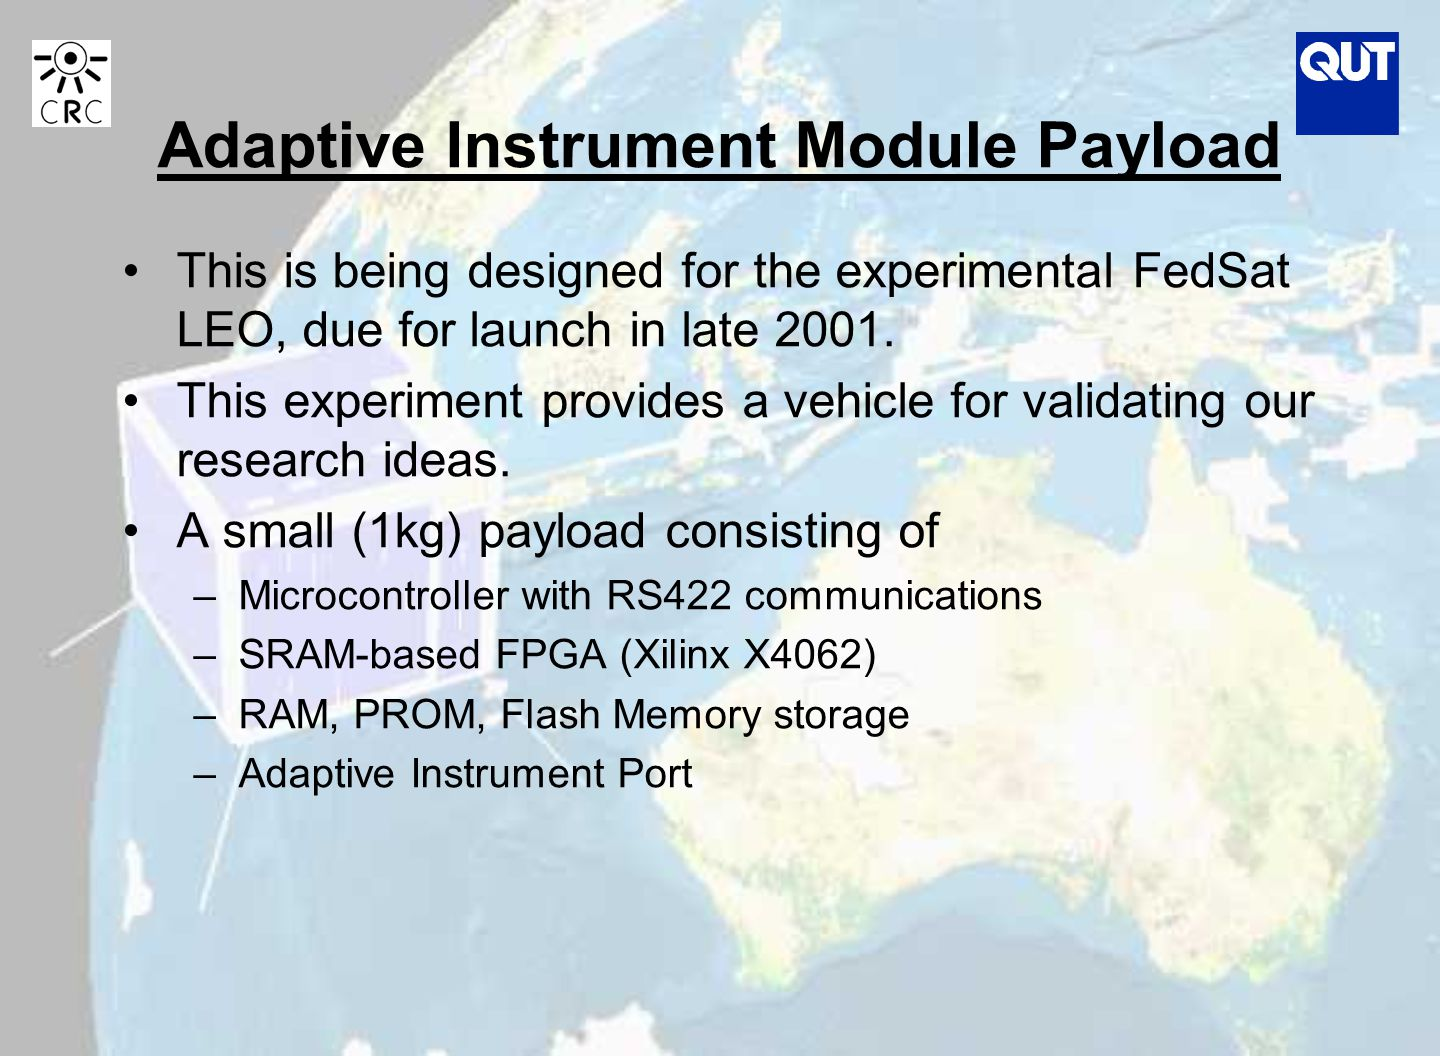 Adaptive Instrument Module Payload This is being designed for the experimental FedSat LEO, due for launch in late 2001.